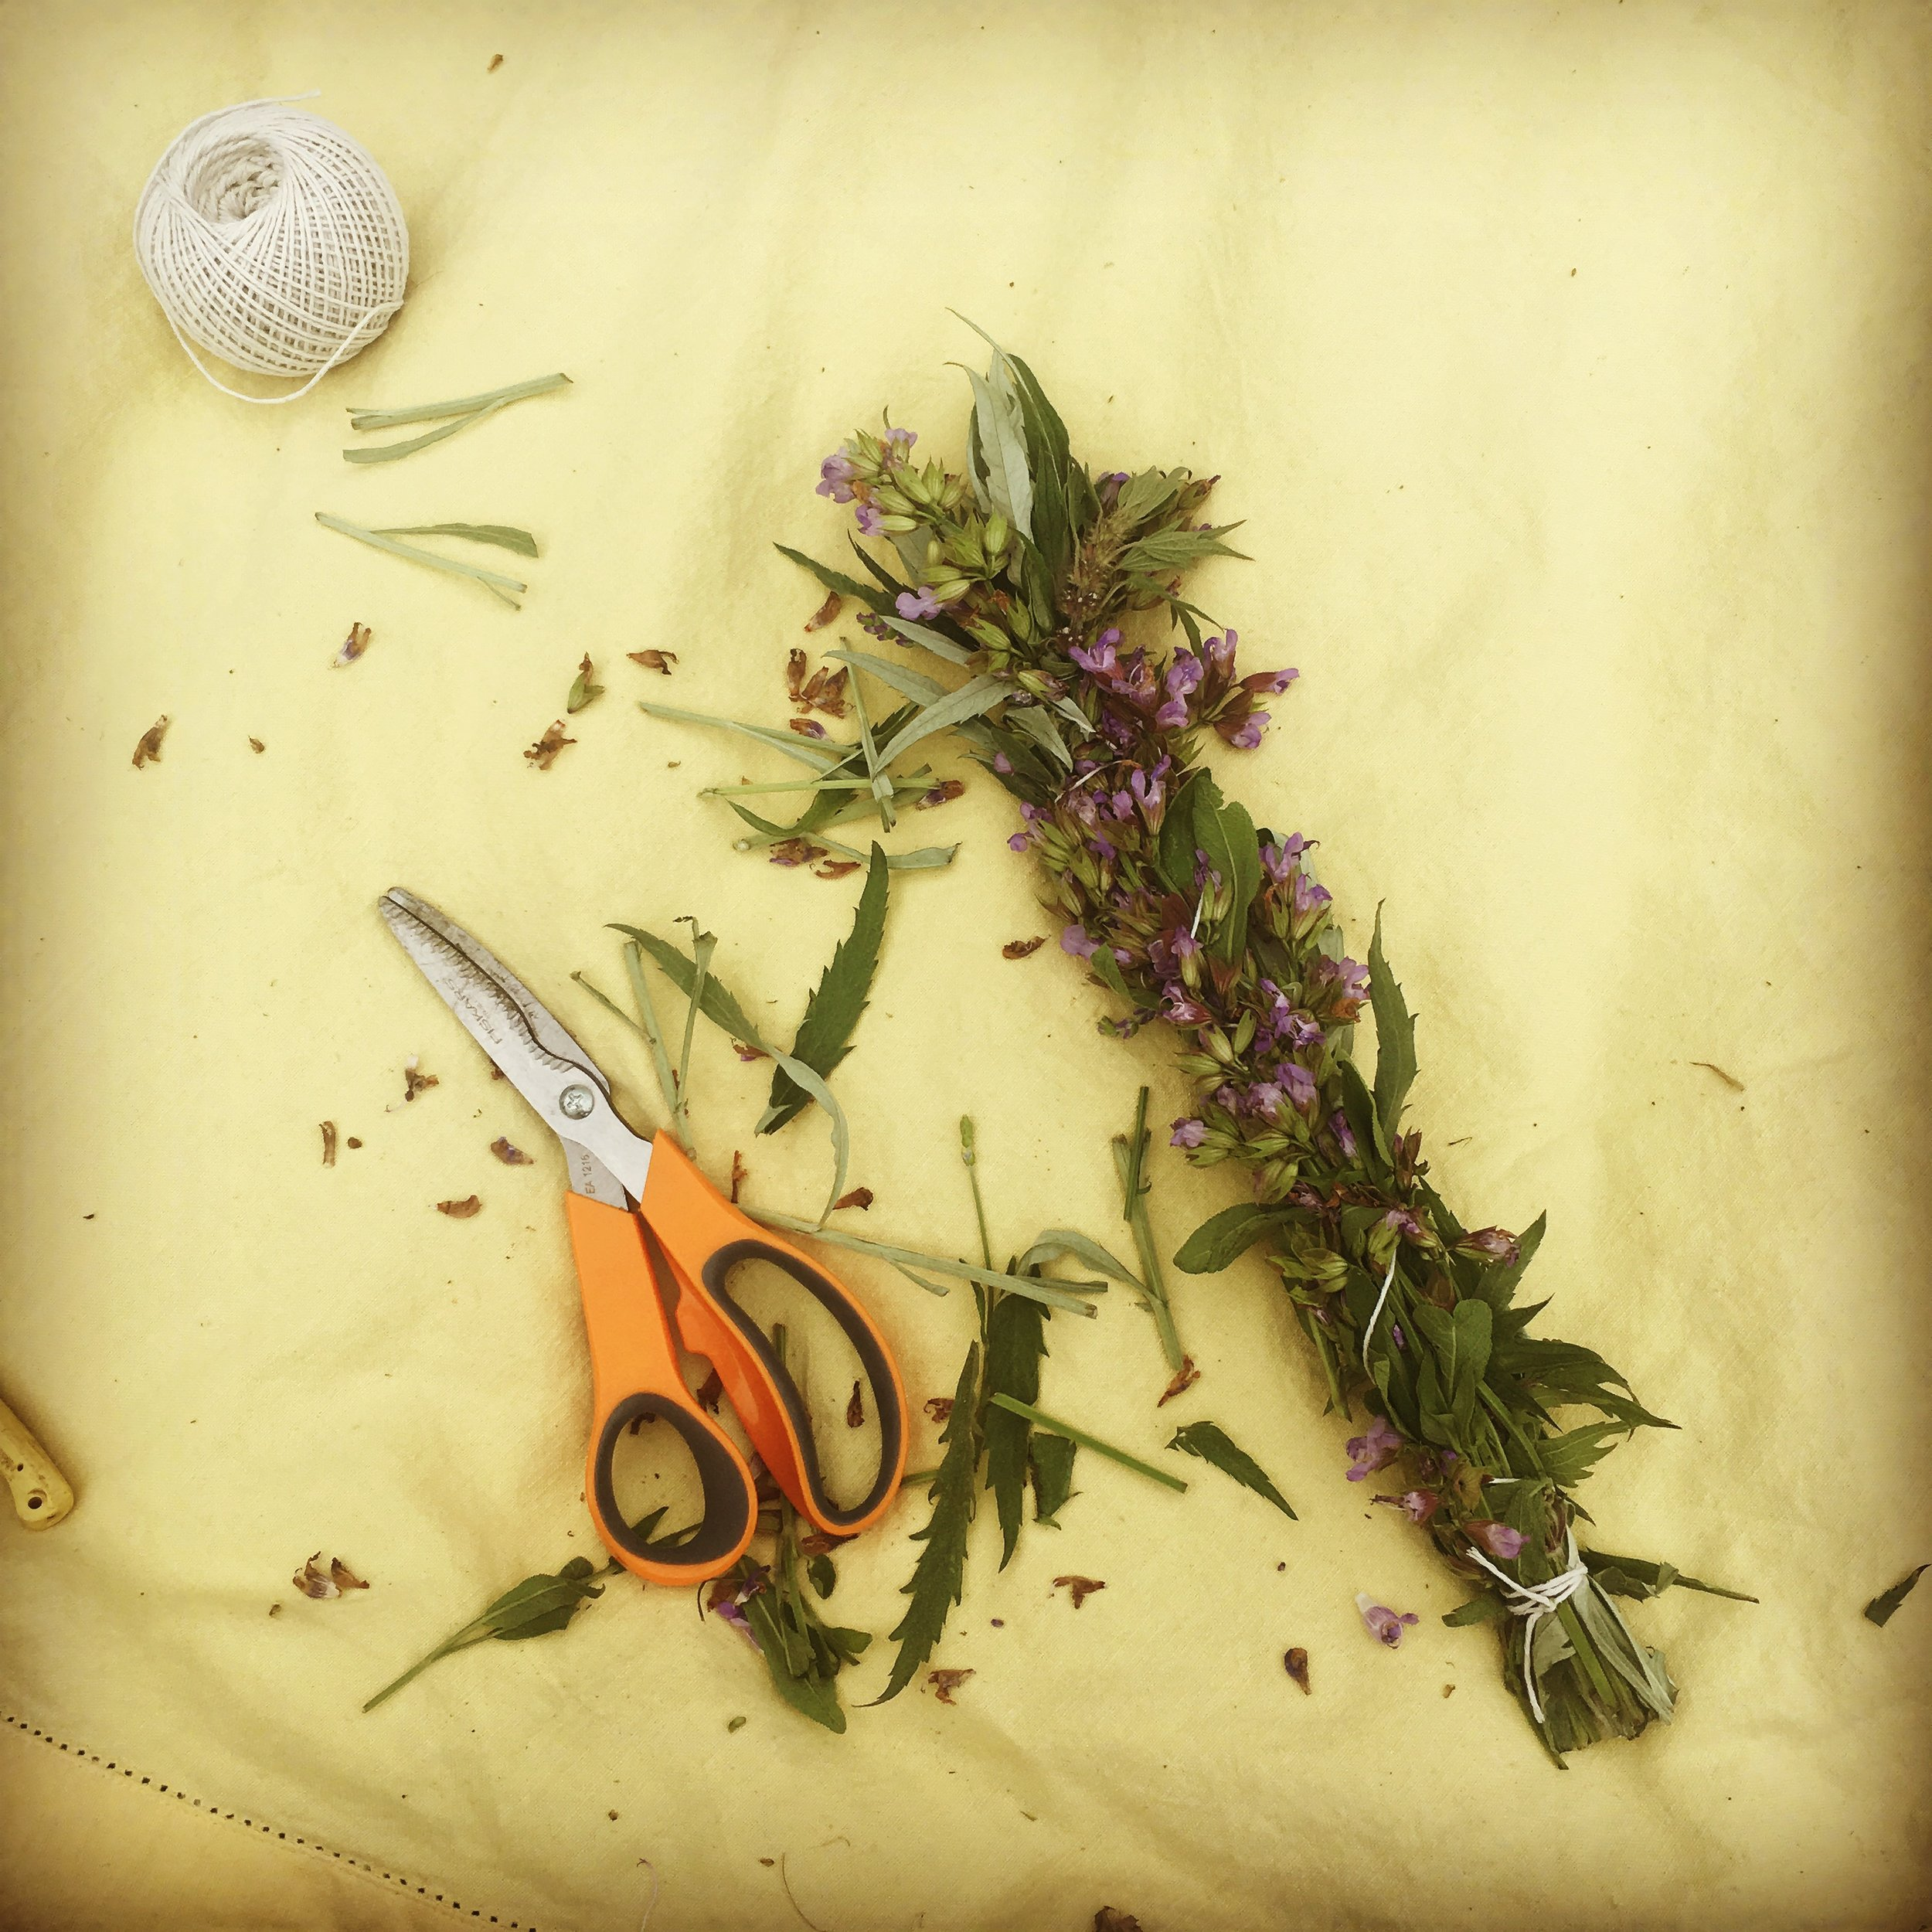 Making herbal burning bundles